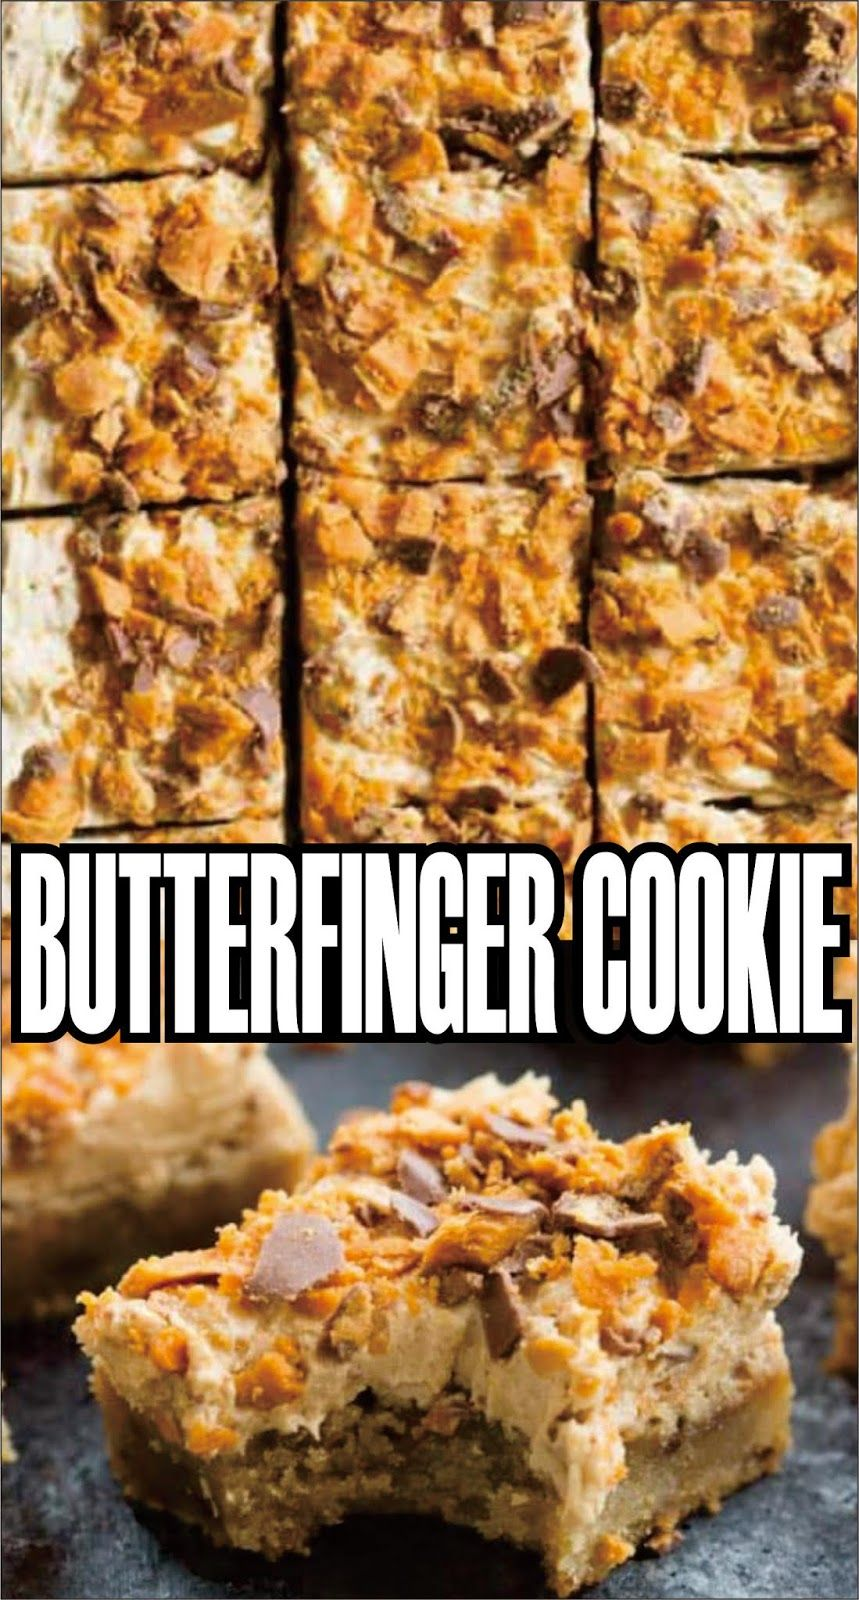 Butterfinger Cookie - Easy Kraft Recipes